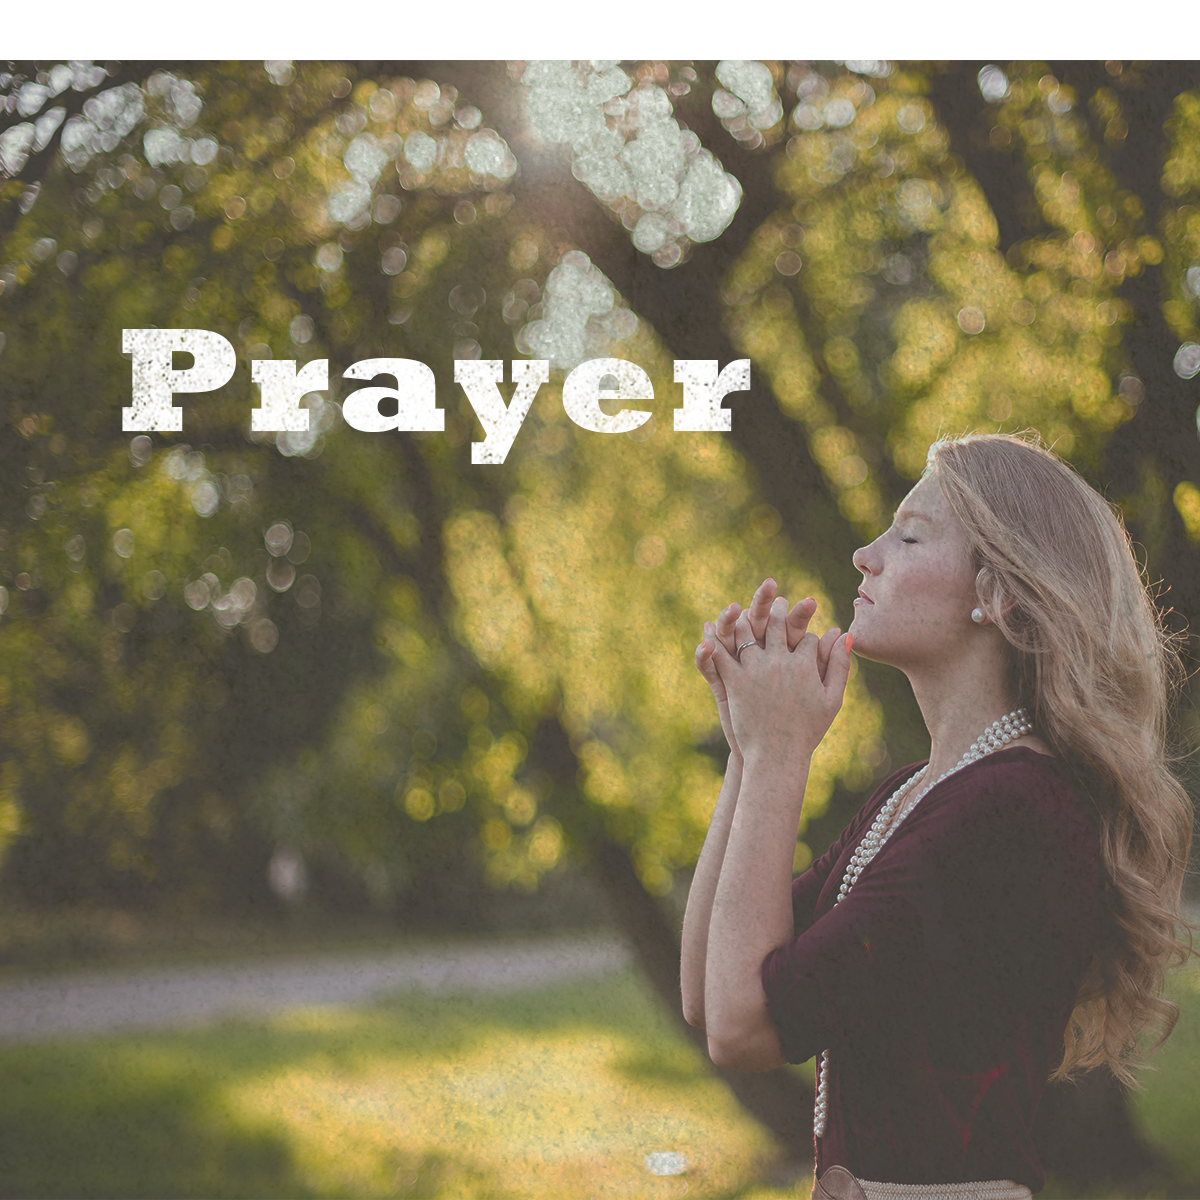 You can expect prayer to be silent and loud. Expect to be prayed for and with. Expect to be invited but not pushed. Expect a community that humbly seeks a connection with the divine and actively prays for the needs of others.